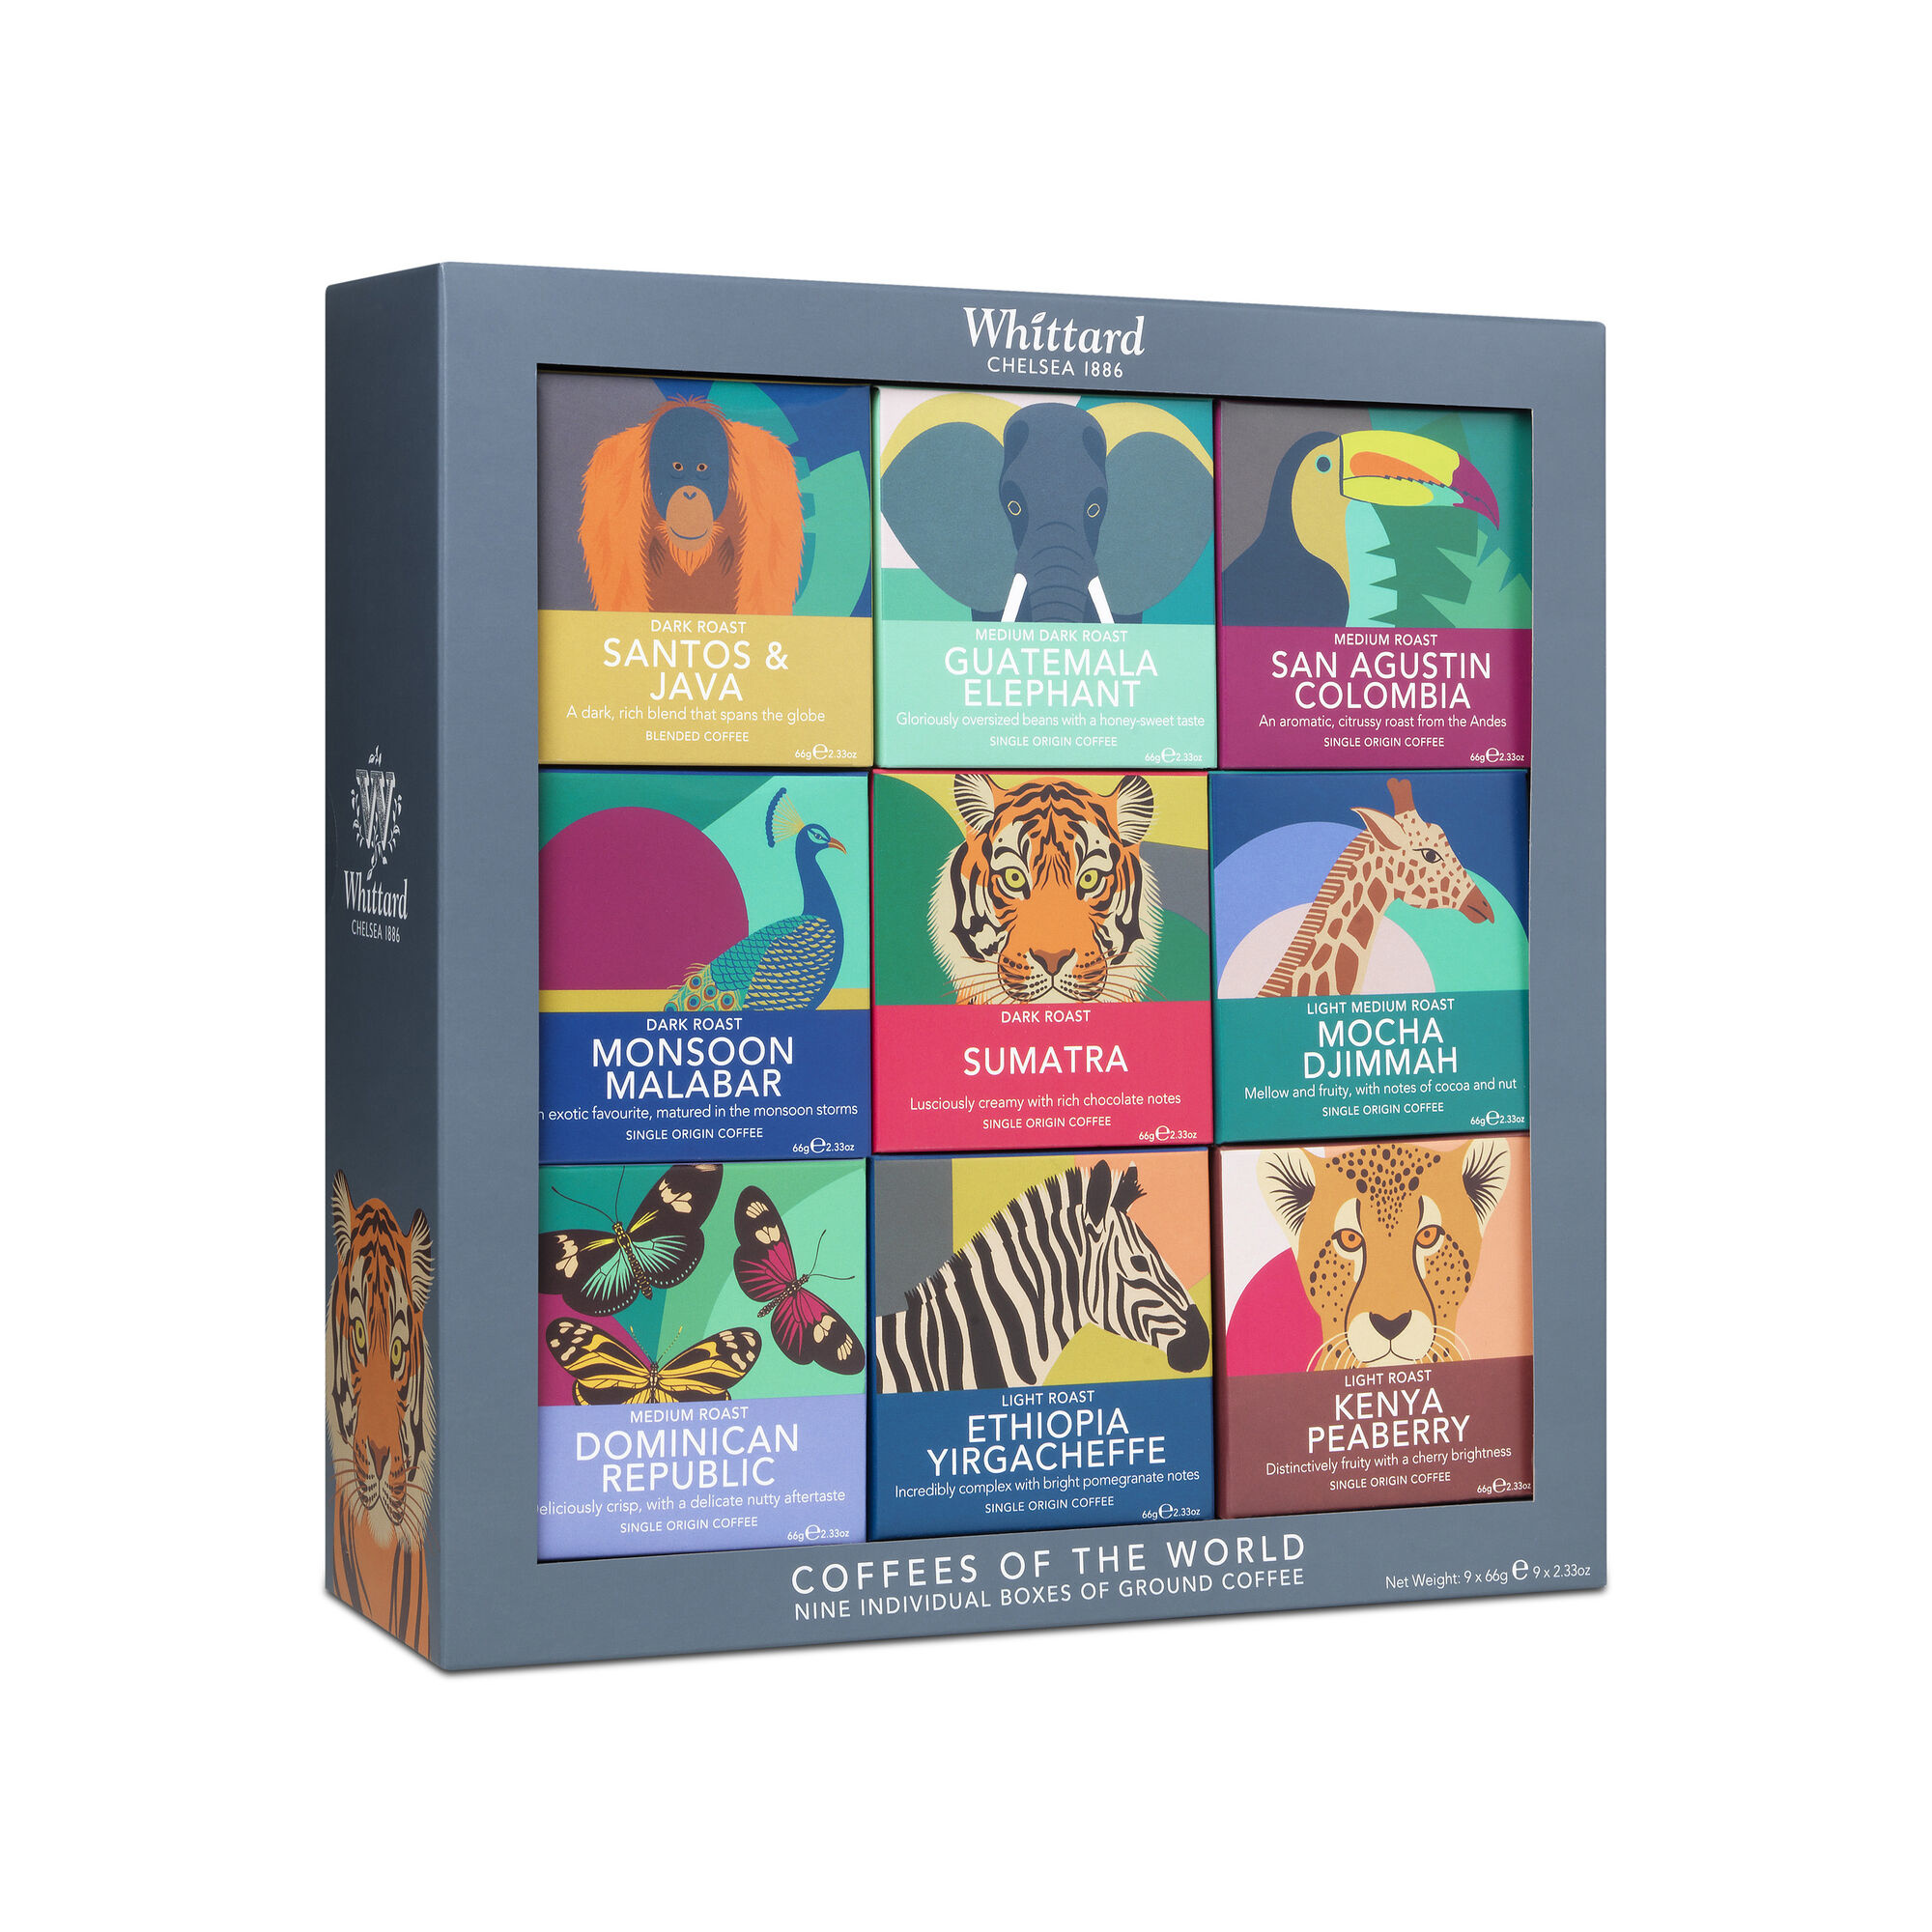 Whittard & Chelsea Coffees of the World Giftset